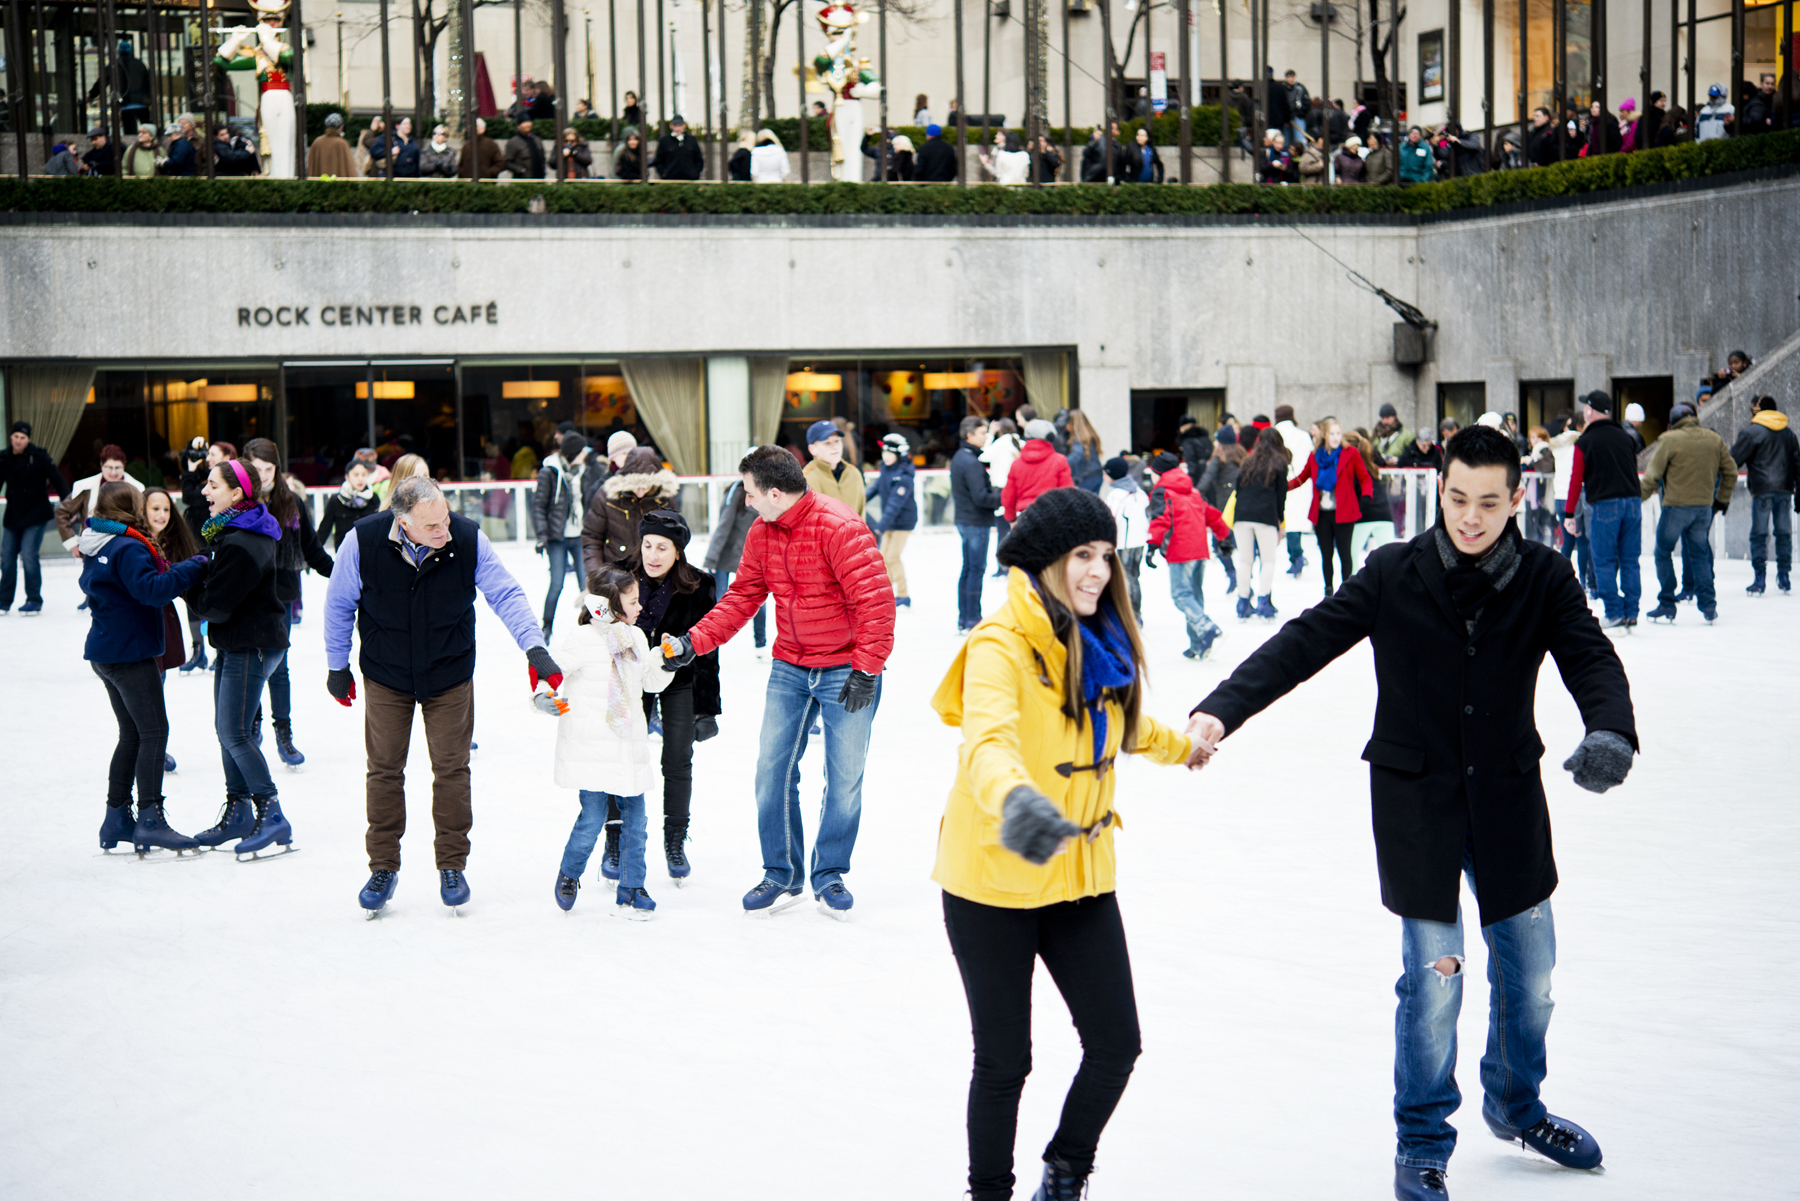 Family-Friendly Spring Break Deals Allow Kids to Skate for Free at The Rink at Rockefeller Center